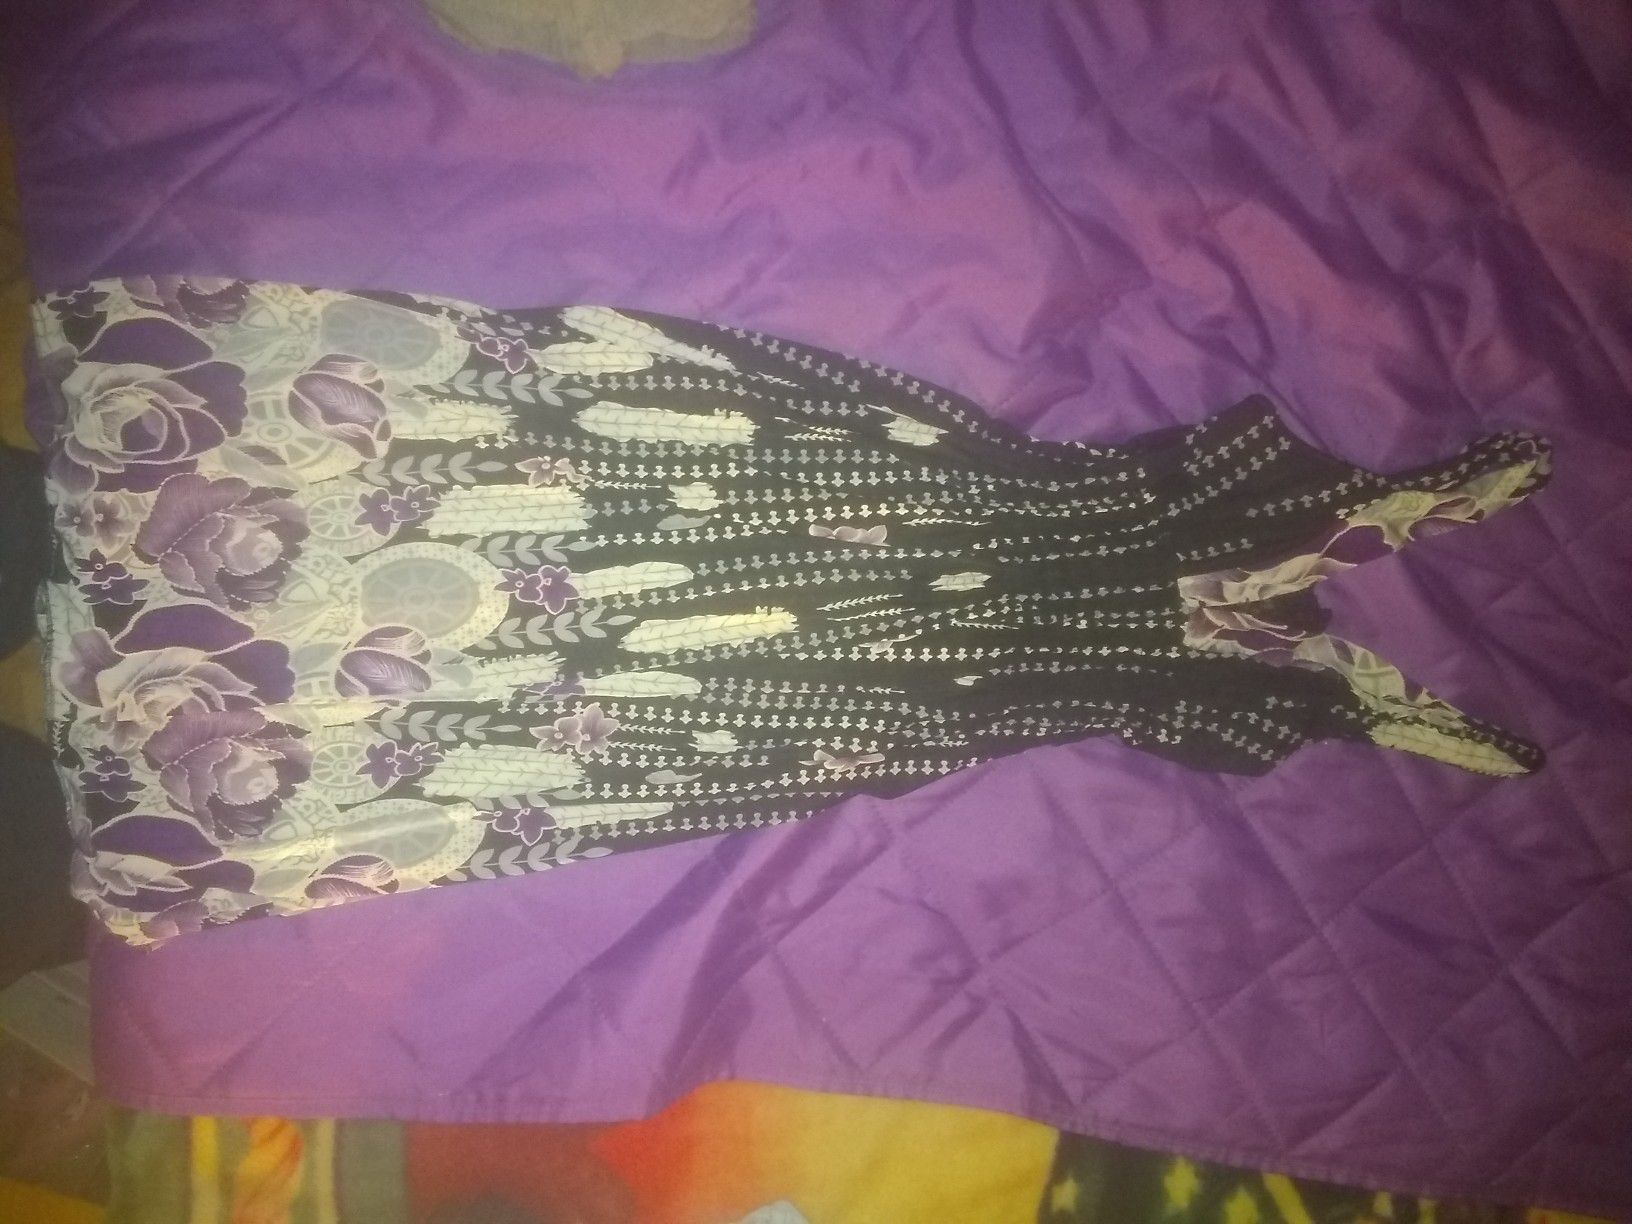 Dress for girls size small